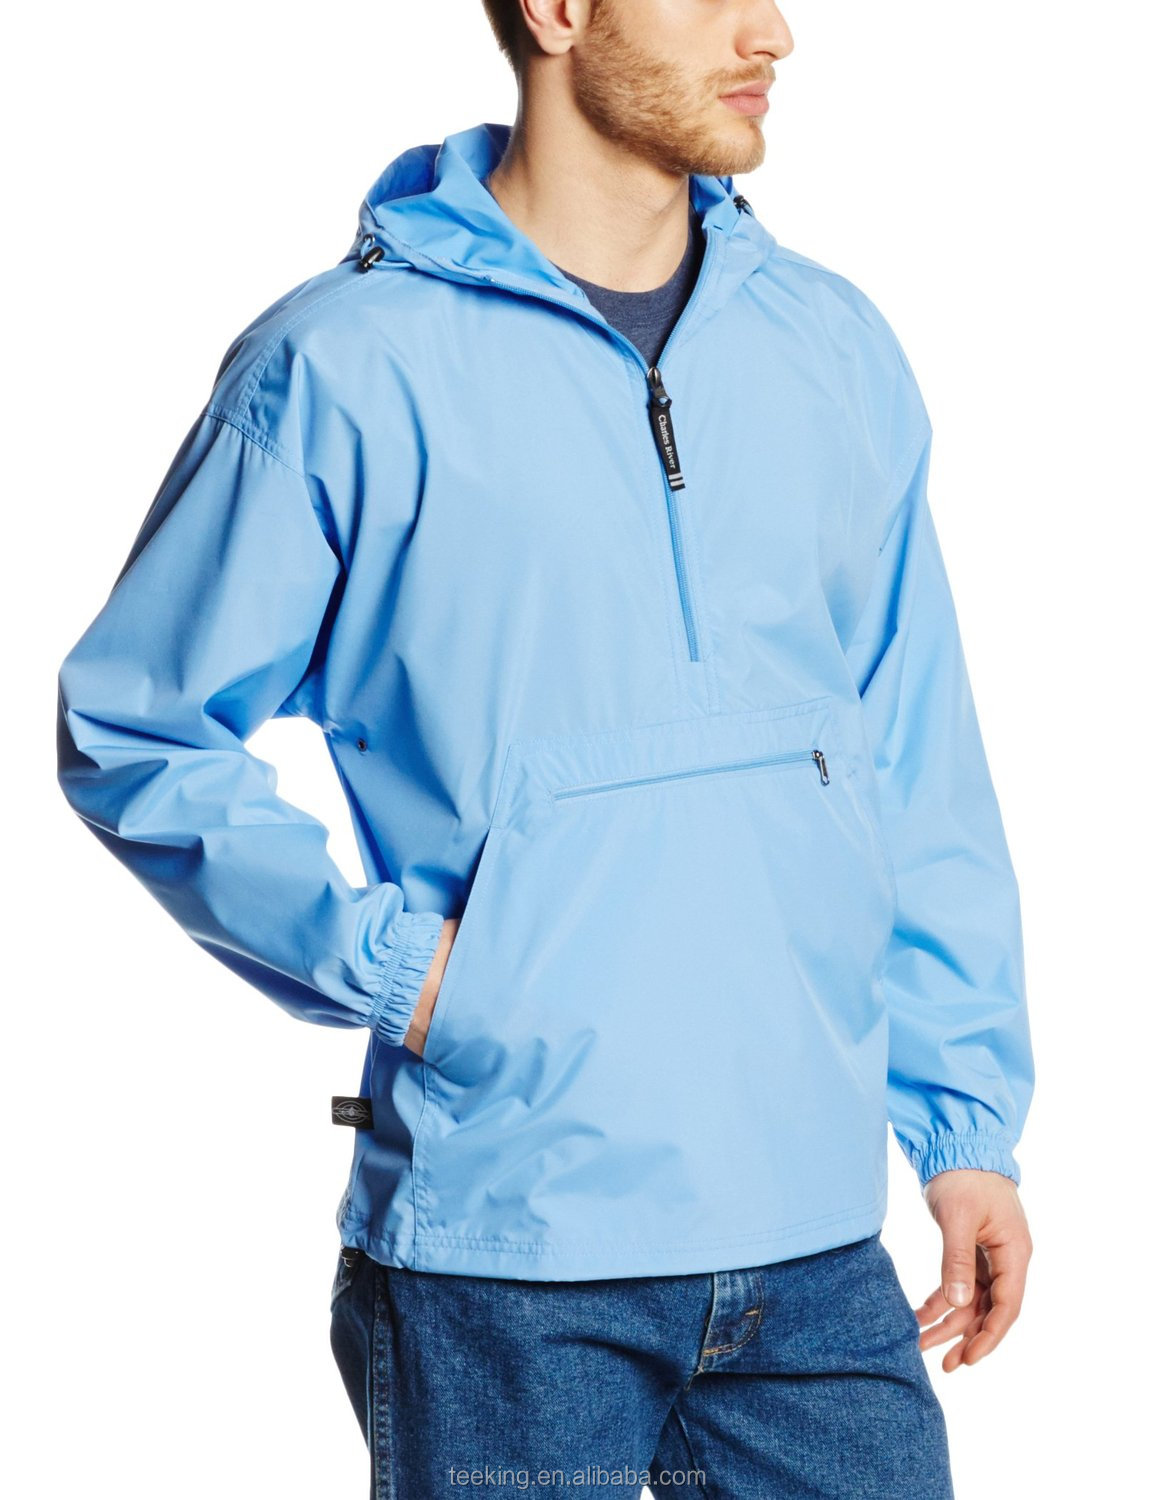 Custom men's Lightweight polyester Windbreaker Pullover jacket